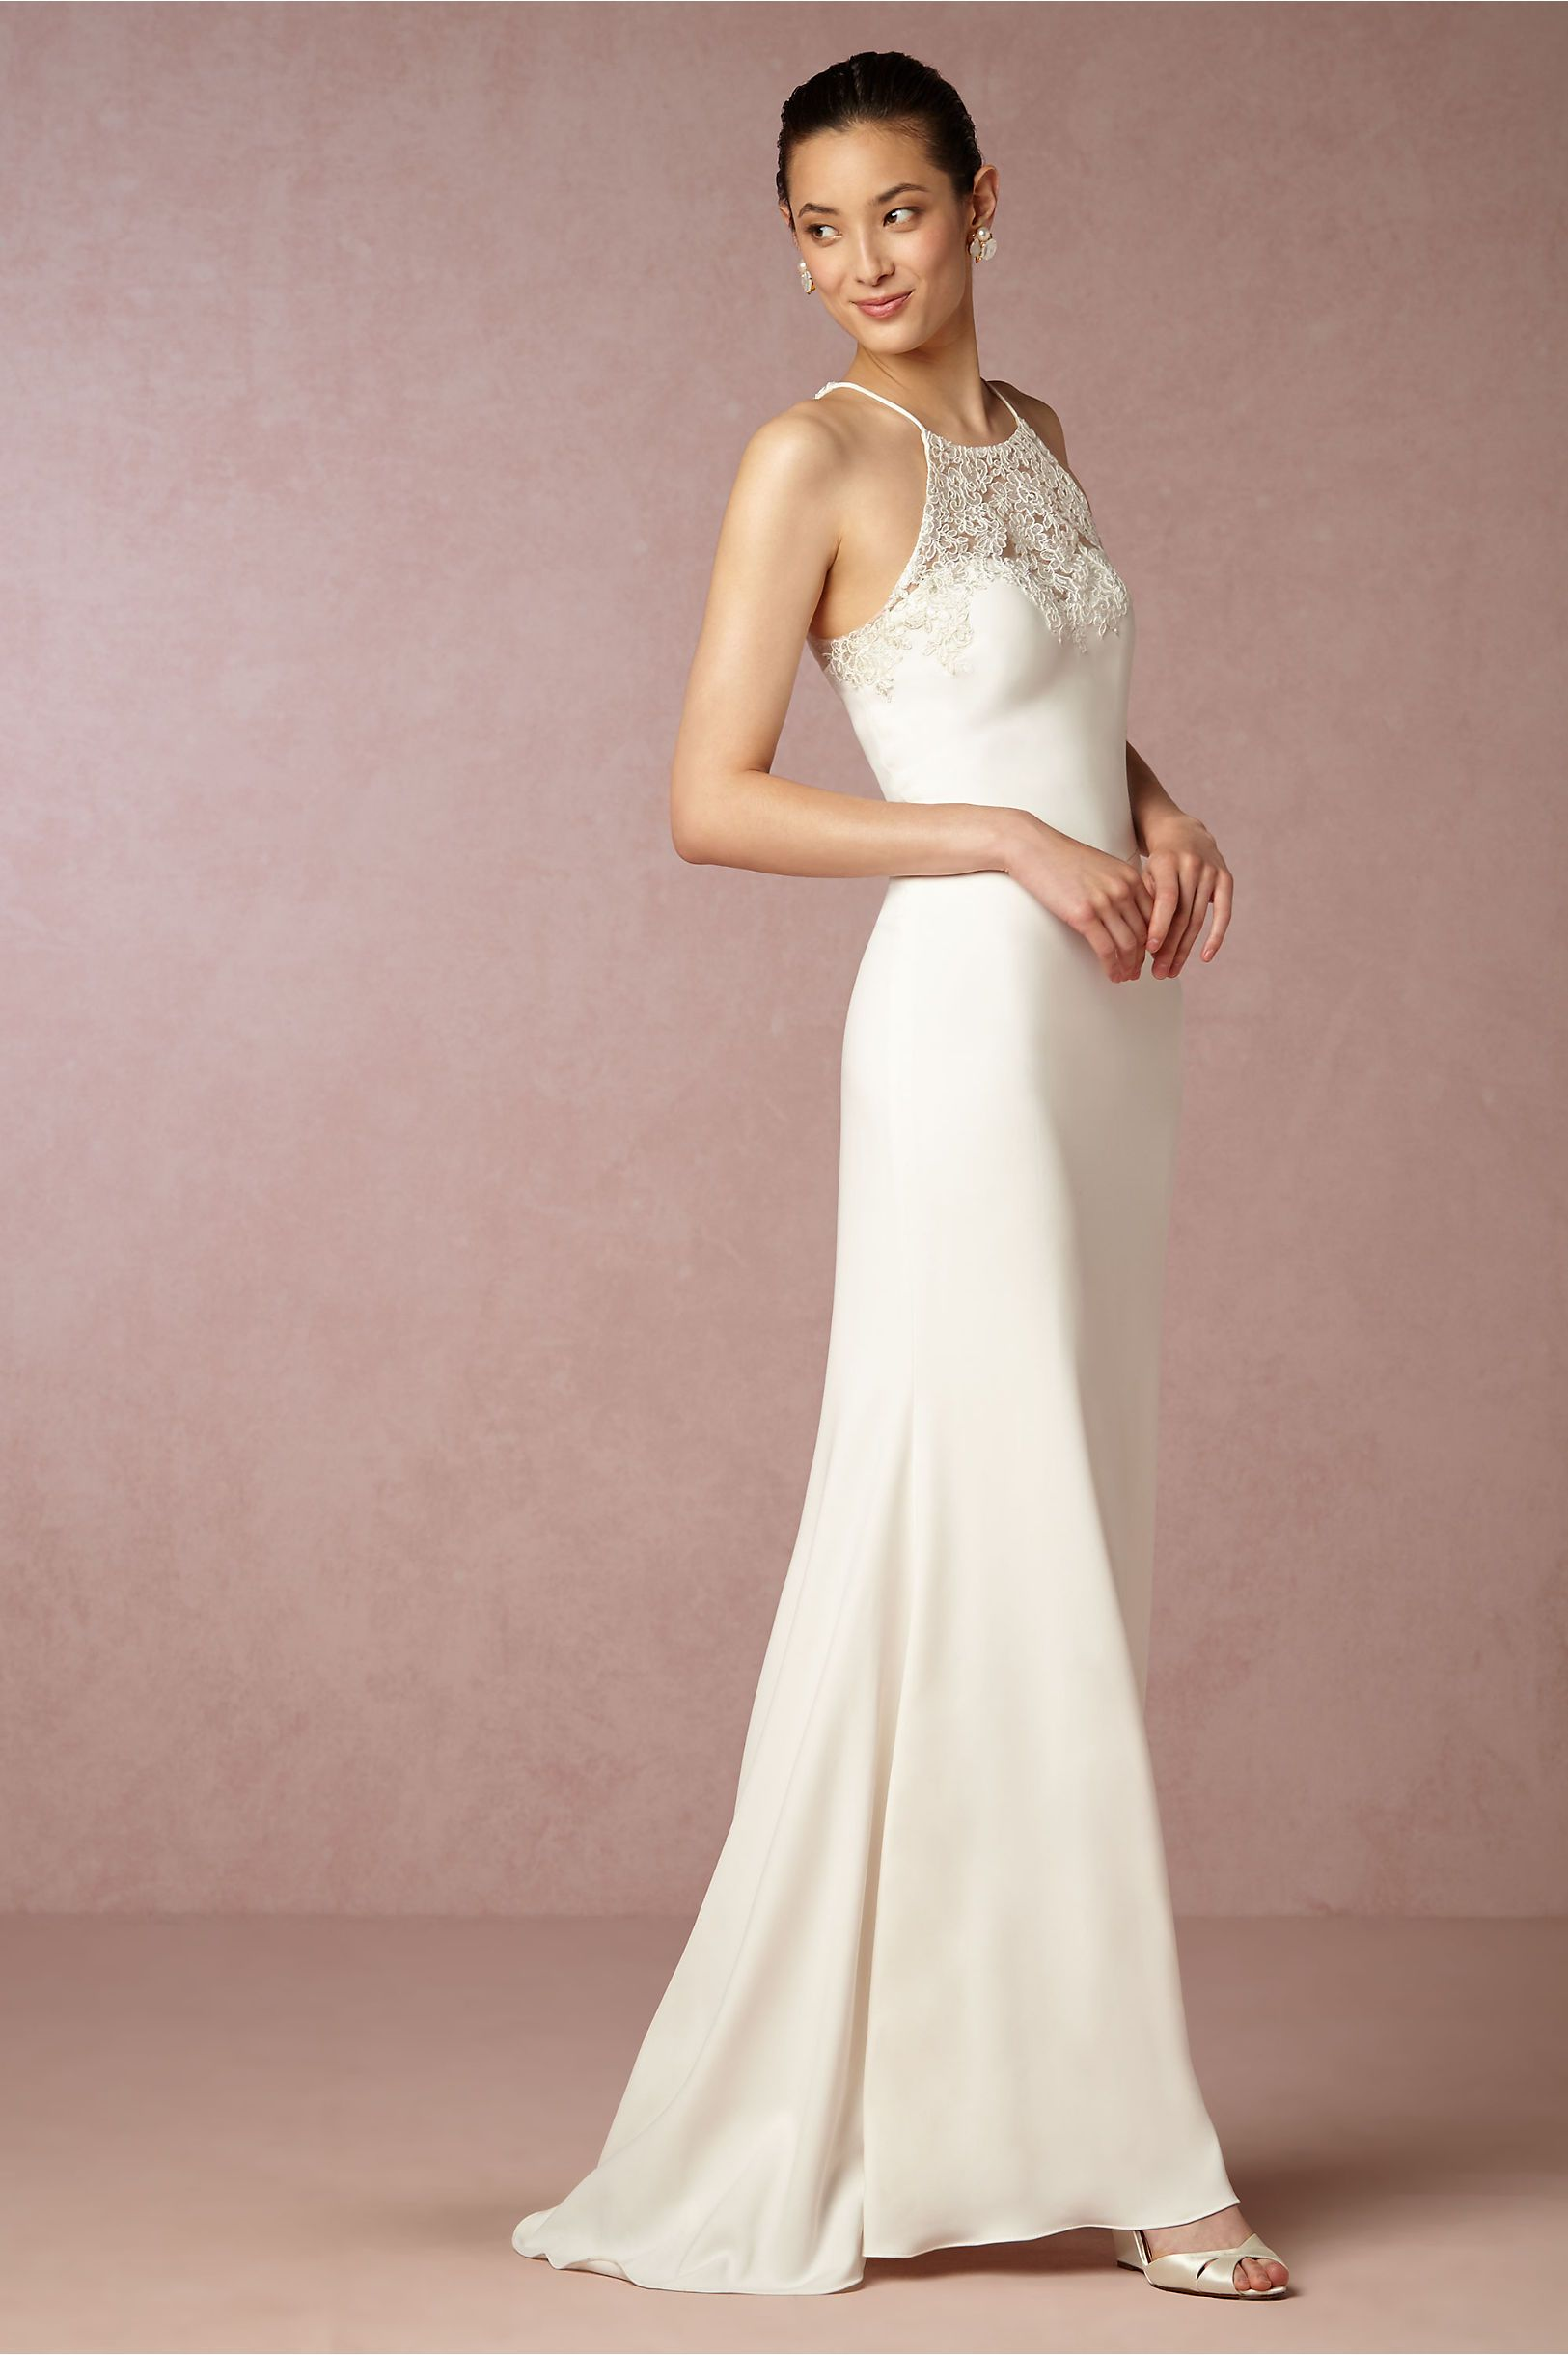 BHLDN Julianne Gown in Bride Wedding Dresses at BHLDN | wedding ...